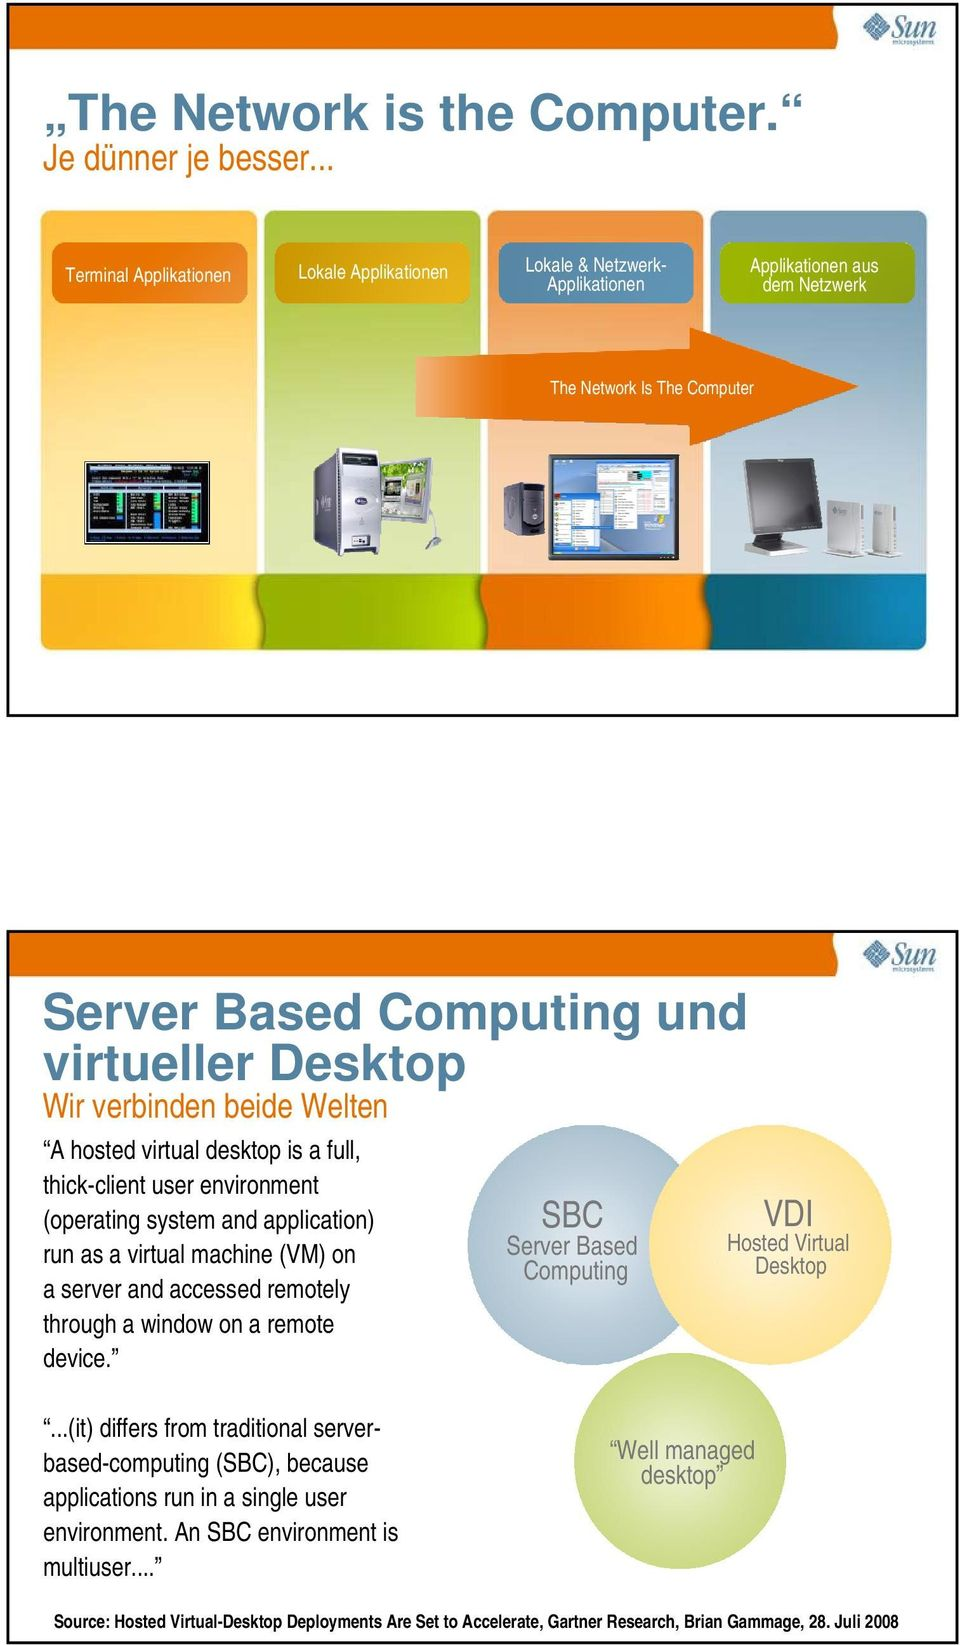 beide Welten A hosted virtual desktop is a full, thick-client user environment (operating system and application) run as a virtual machine (VM) on a server and accessed remotely through a window on a